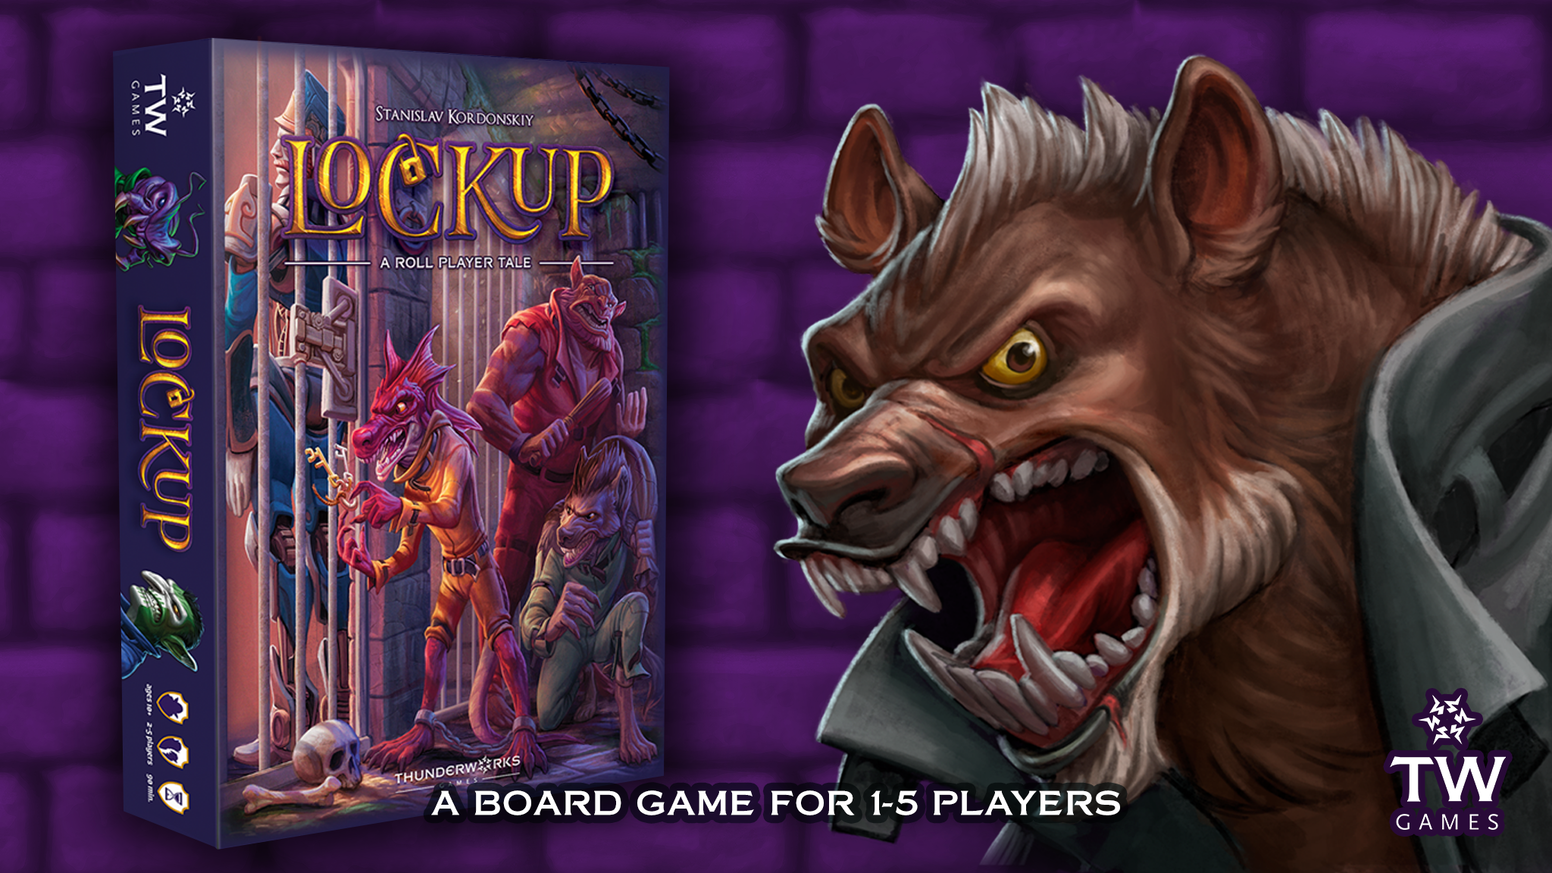 a stand alone competitive fantasy worker placement board game for 1 5 players set in kulbak prison in the world of roll player